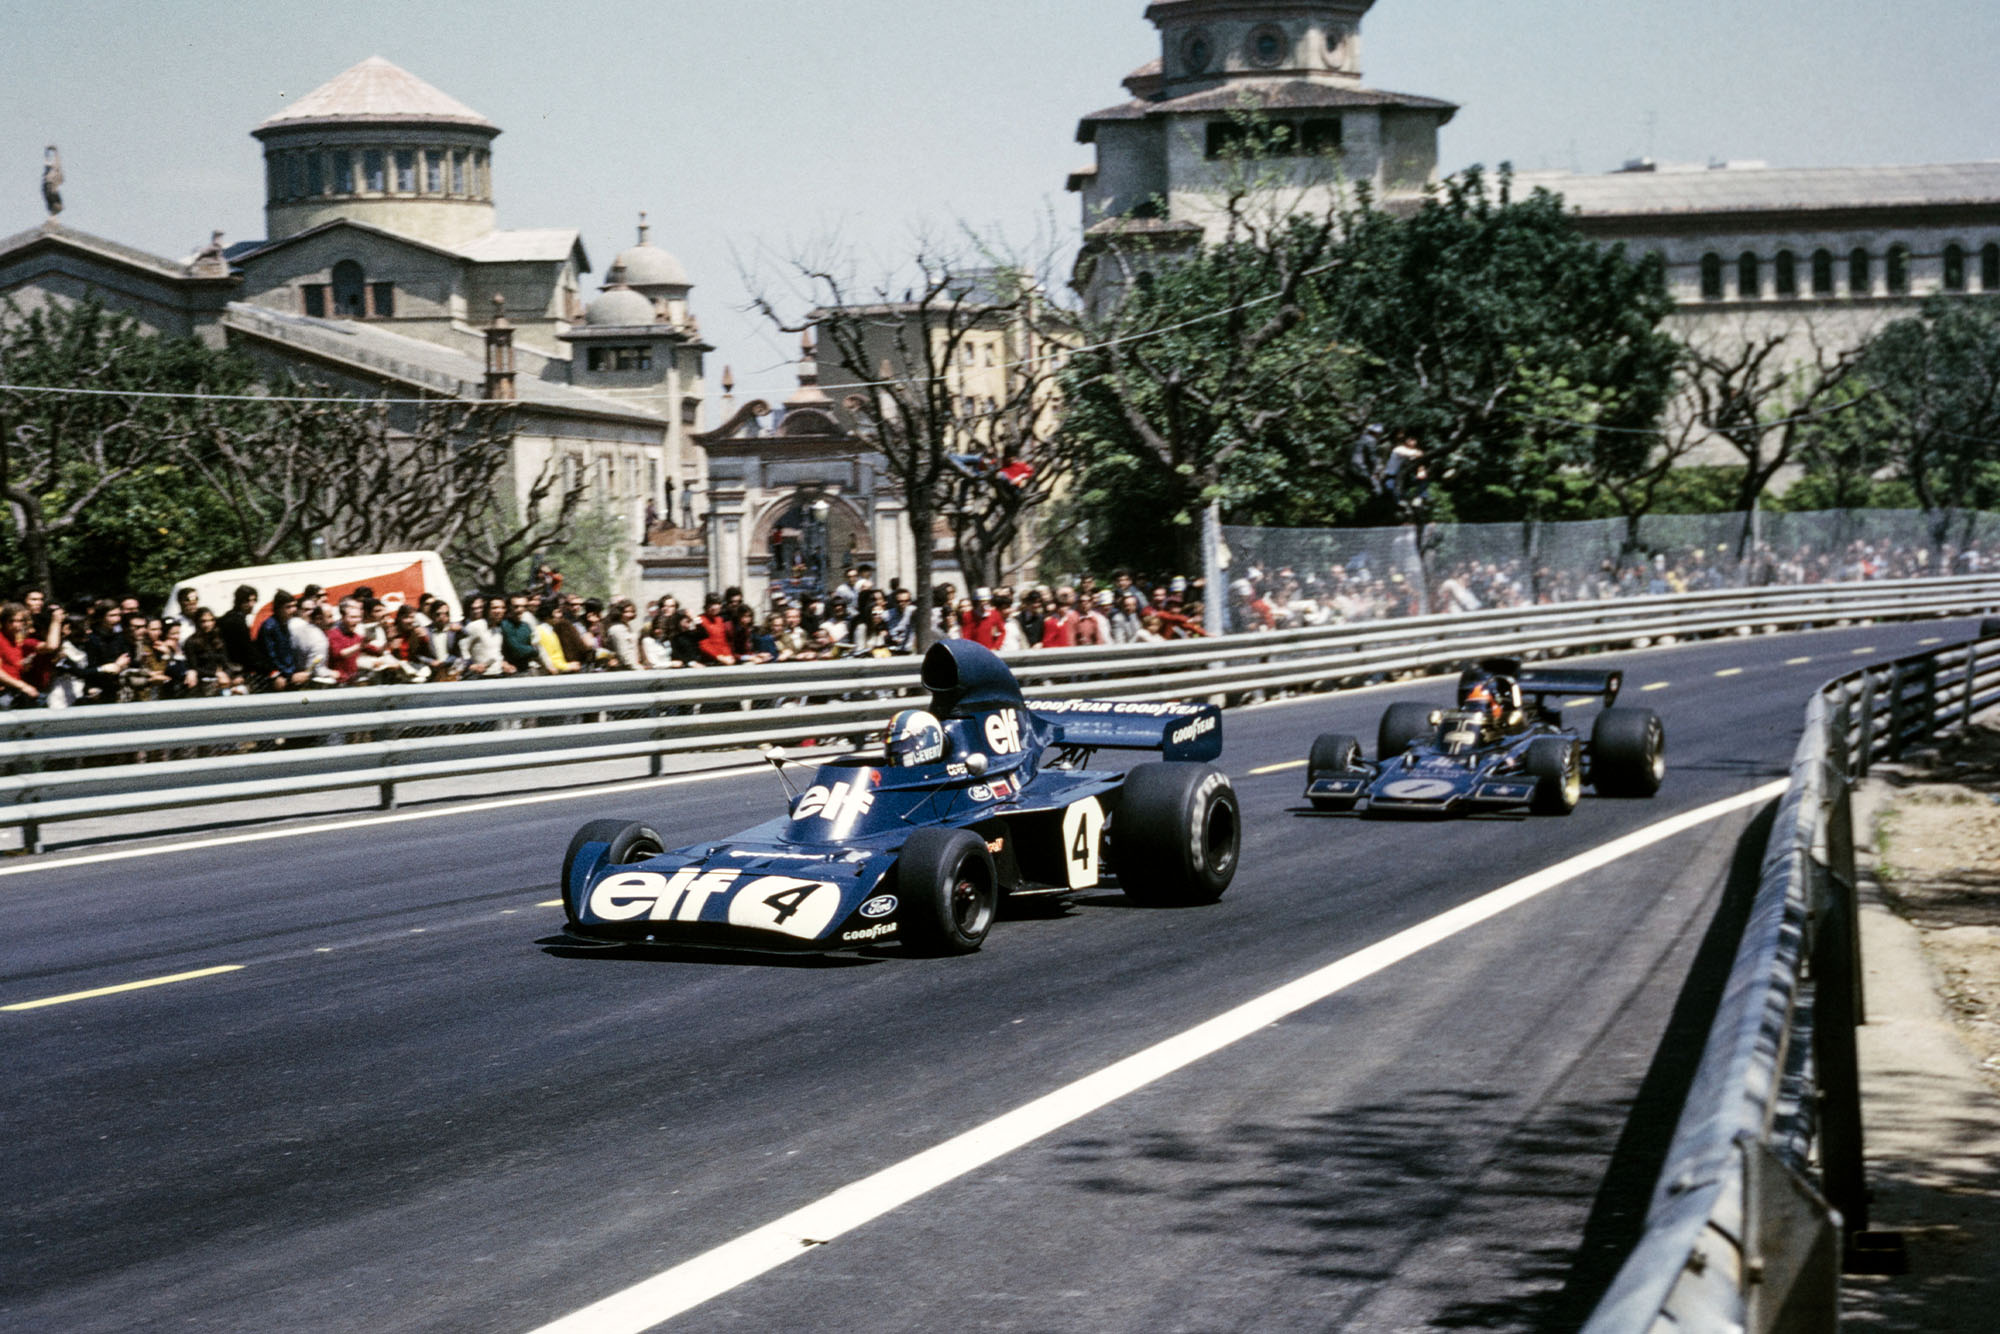 Emerson Fittipaldi chases Stewart at the 1973 Spanish Grand Prix, Montjuïch Park.